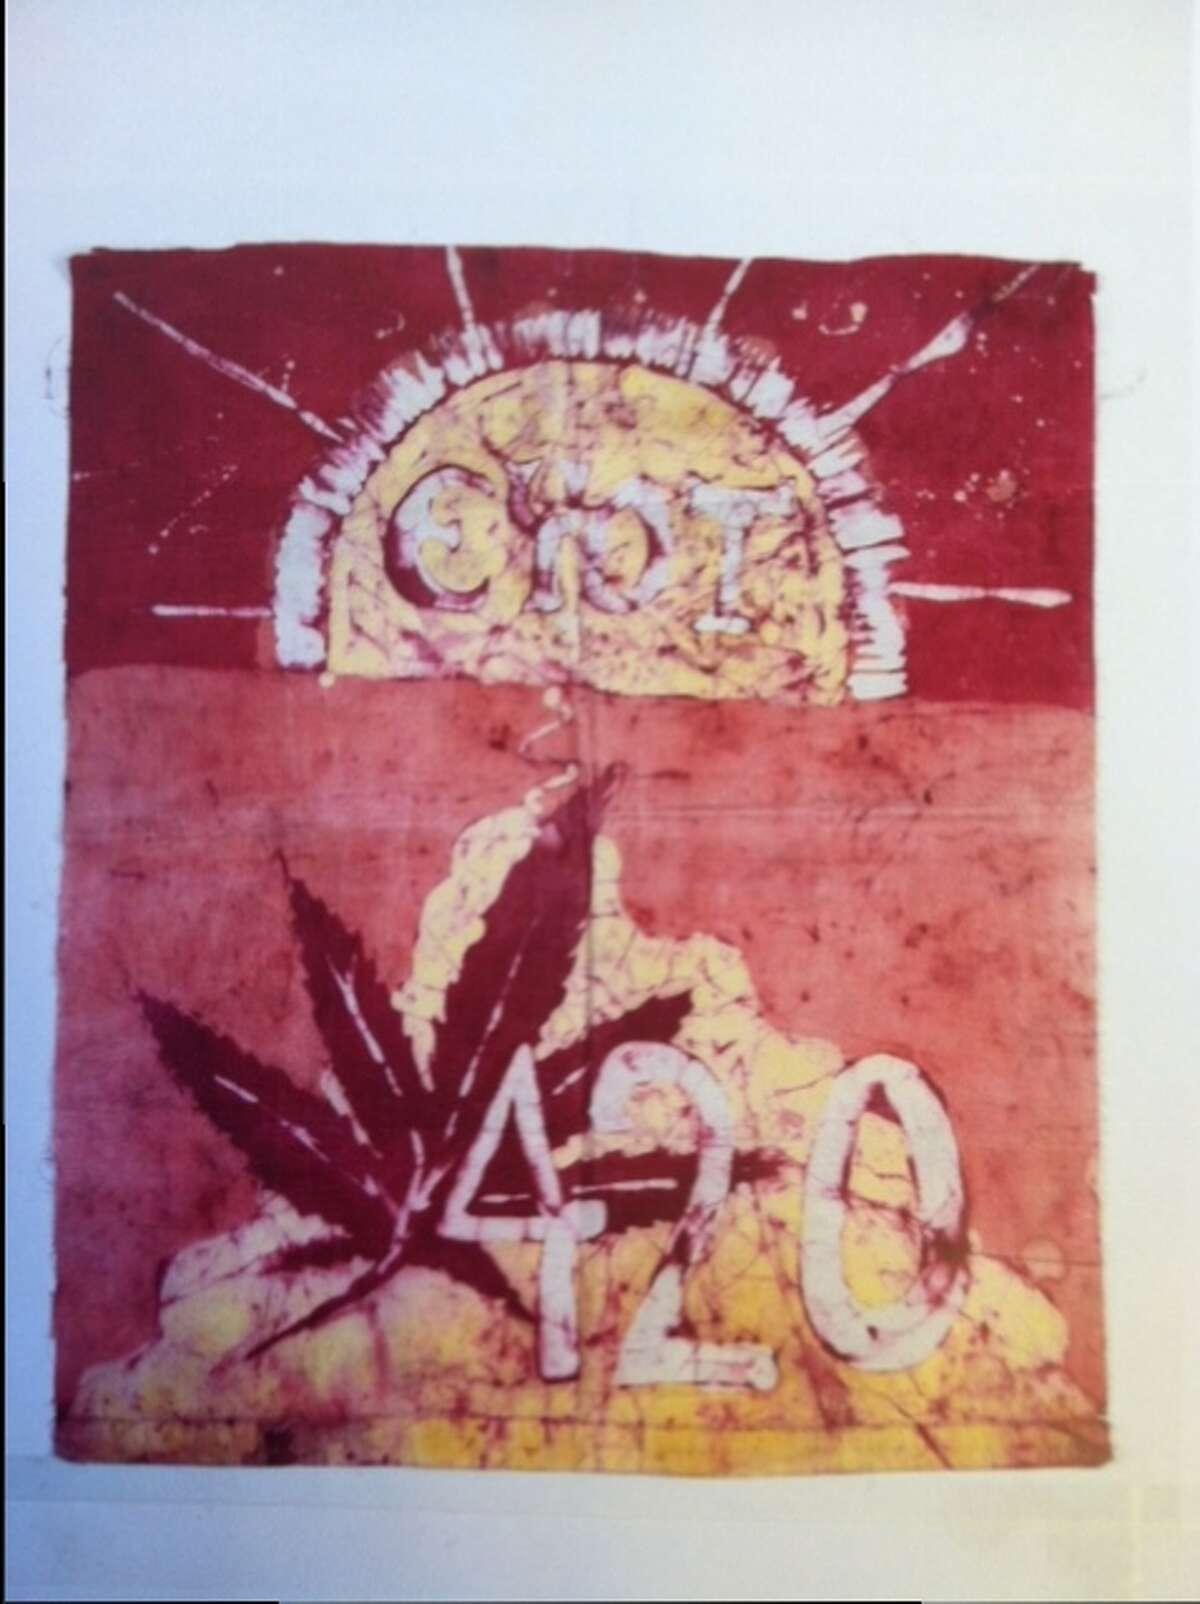 """The 420 flag, pictured here, was made by a friend of the Waldos named Patty Young in the 1970s. The phrase """"EYOT"""" at the top was mostly meaningless, but it became used as a substitute for 'It's all too weird and funny!'"""""""